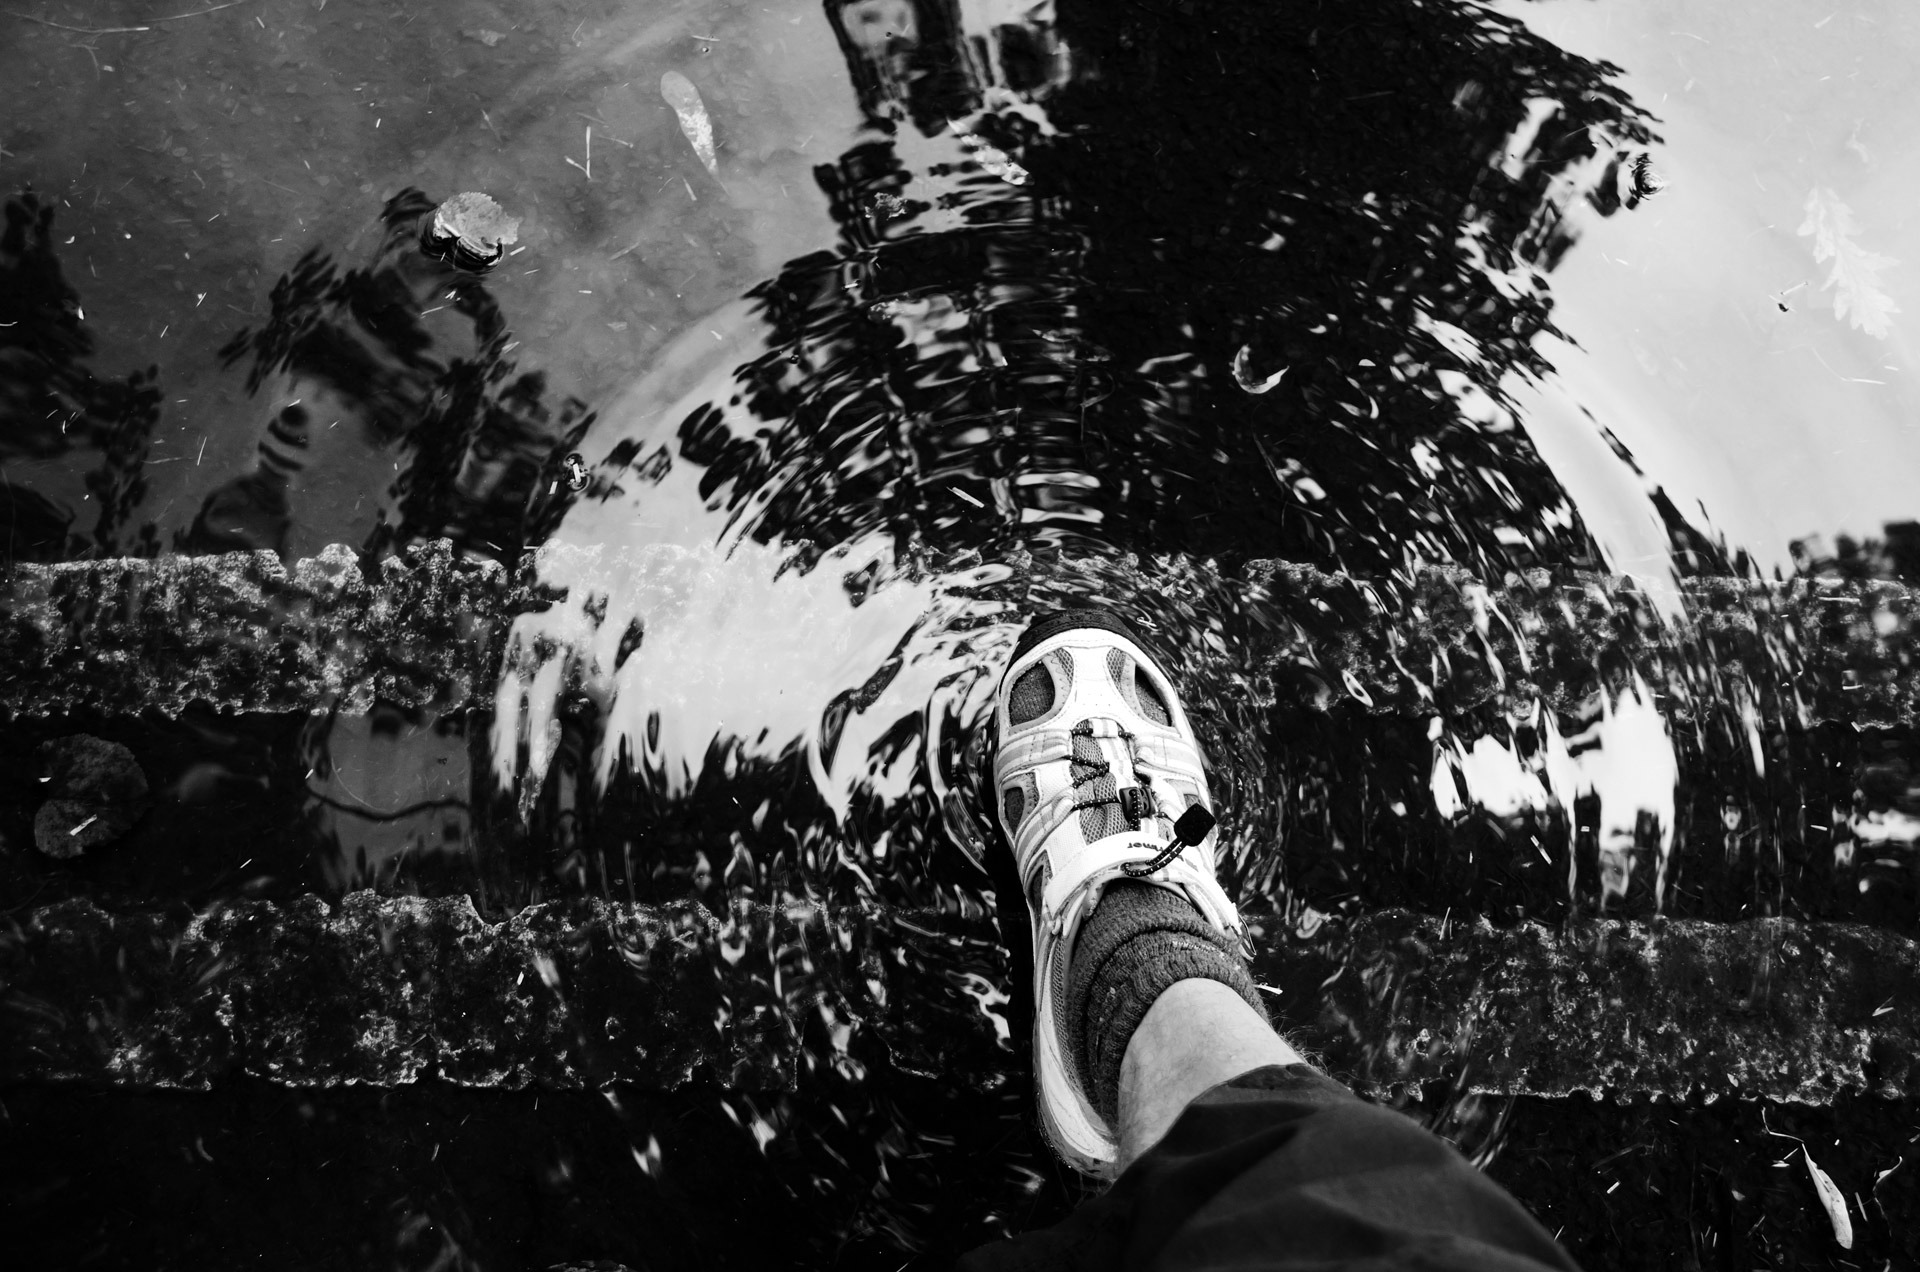 foot_and_puddle_206238.jpg